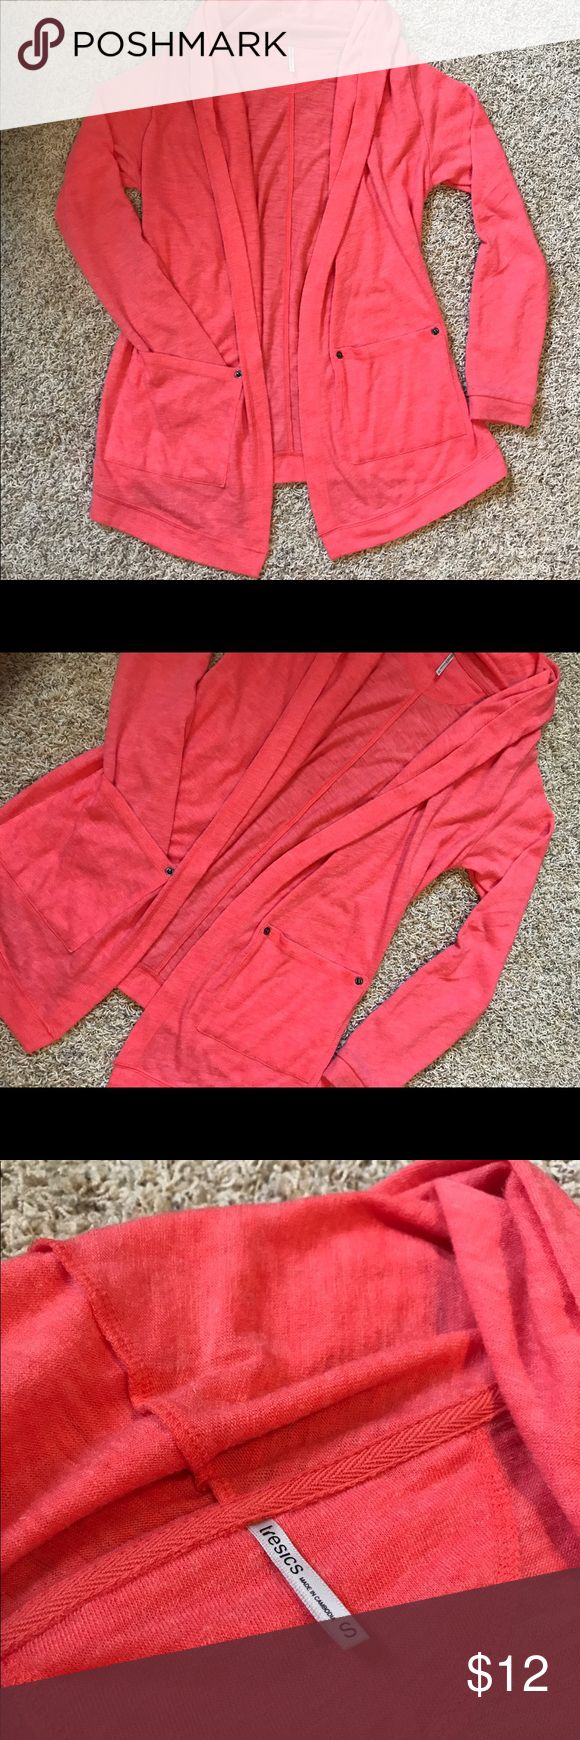 Pink cardigan with pockets - small Very cute and unique pink / coral cardigan from a boutique. Color is true to pictures. The cardigan is SO comfy! I only wore it 1-2 times though because I'm not a huge fan of wearing pink. Excellent condition, From a clean, smoke-free home! tresics Sweaters Cardigans